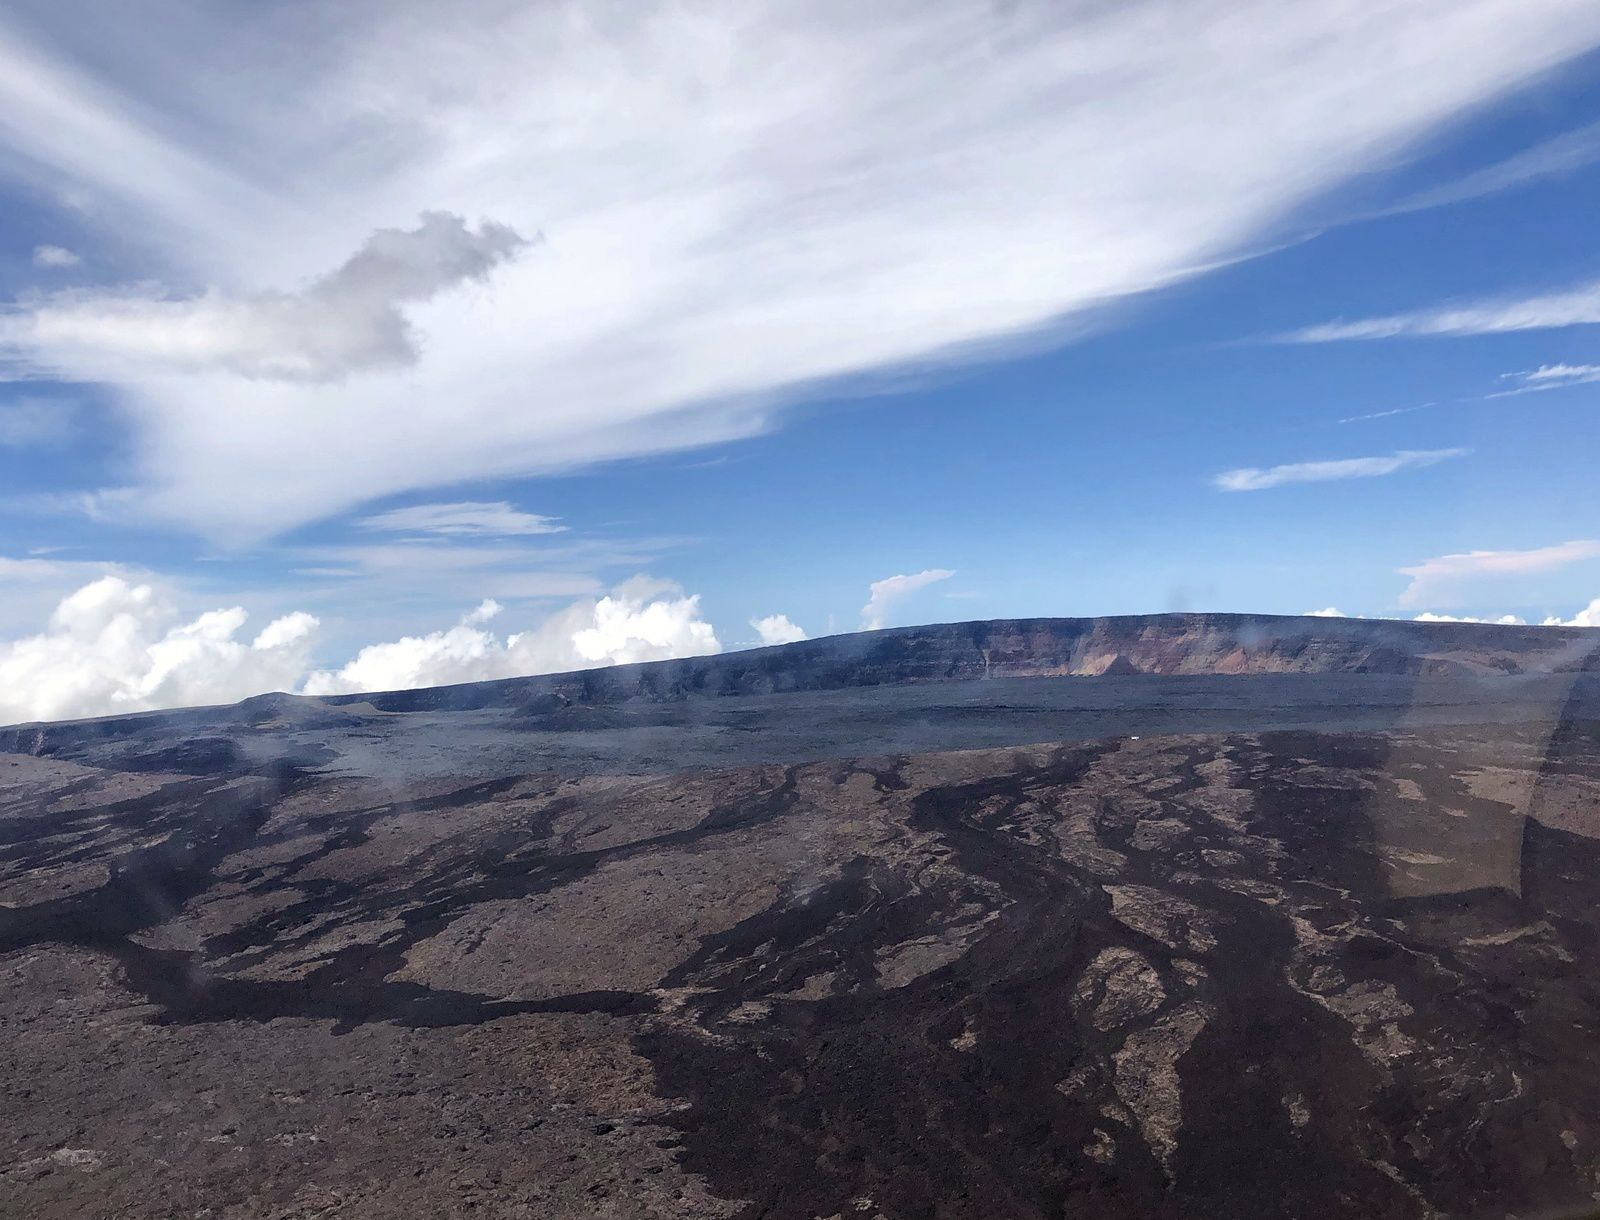 Mauna Loa - The true summit of the volcano-bouckier is located just to the right of the center of the photo. The cones formed during the eruptions of 1940 (right) and 1949 (left) are visible in the background on the left. - Civil Air Patrol photo of October 20, 2019